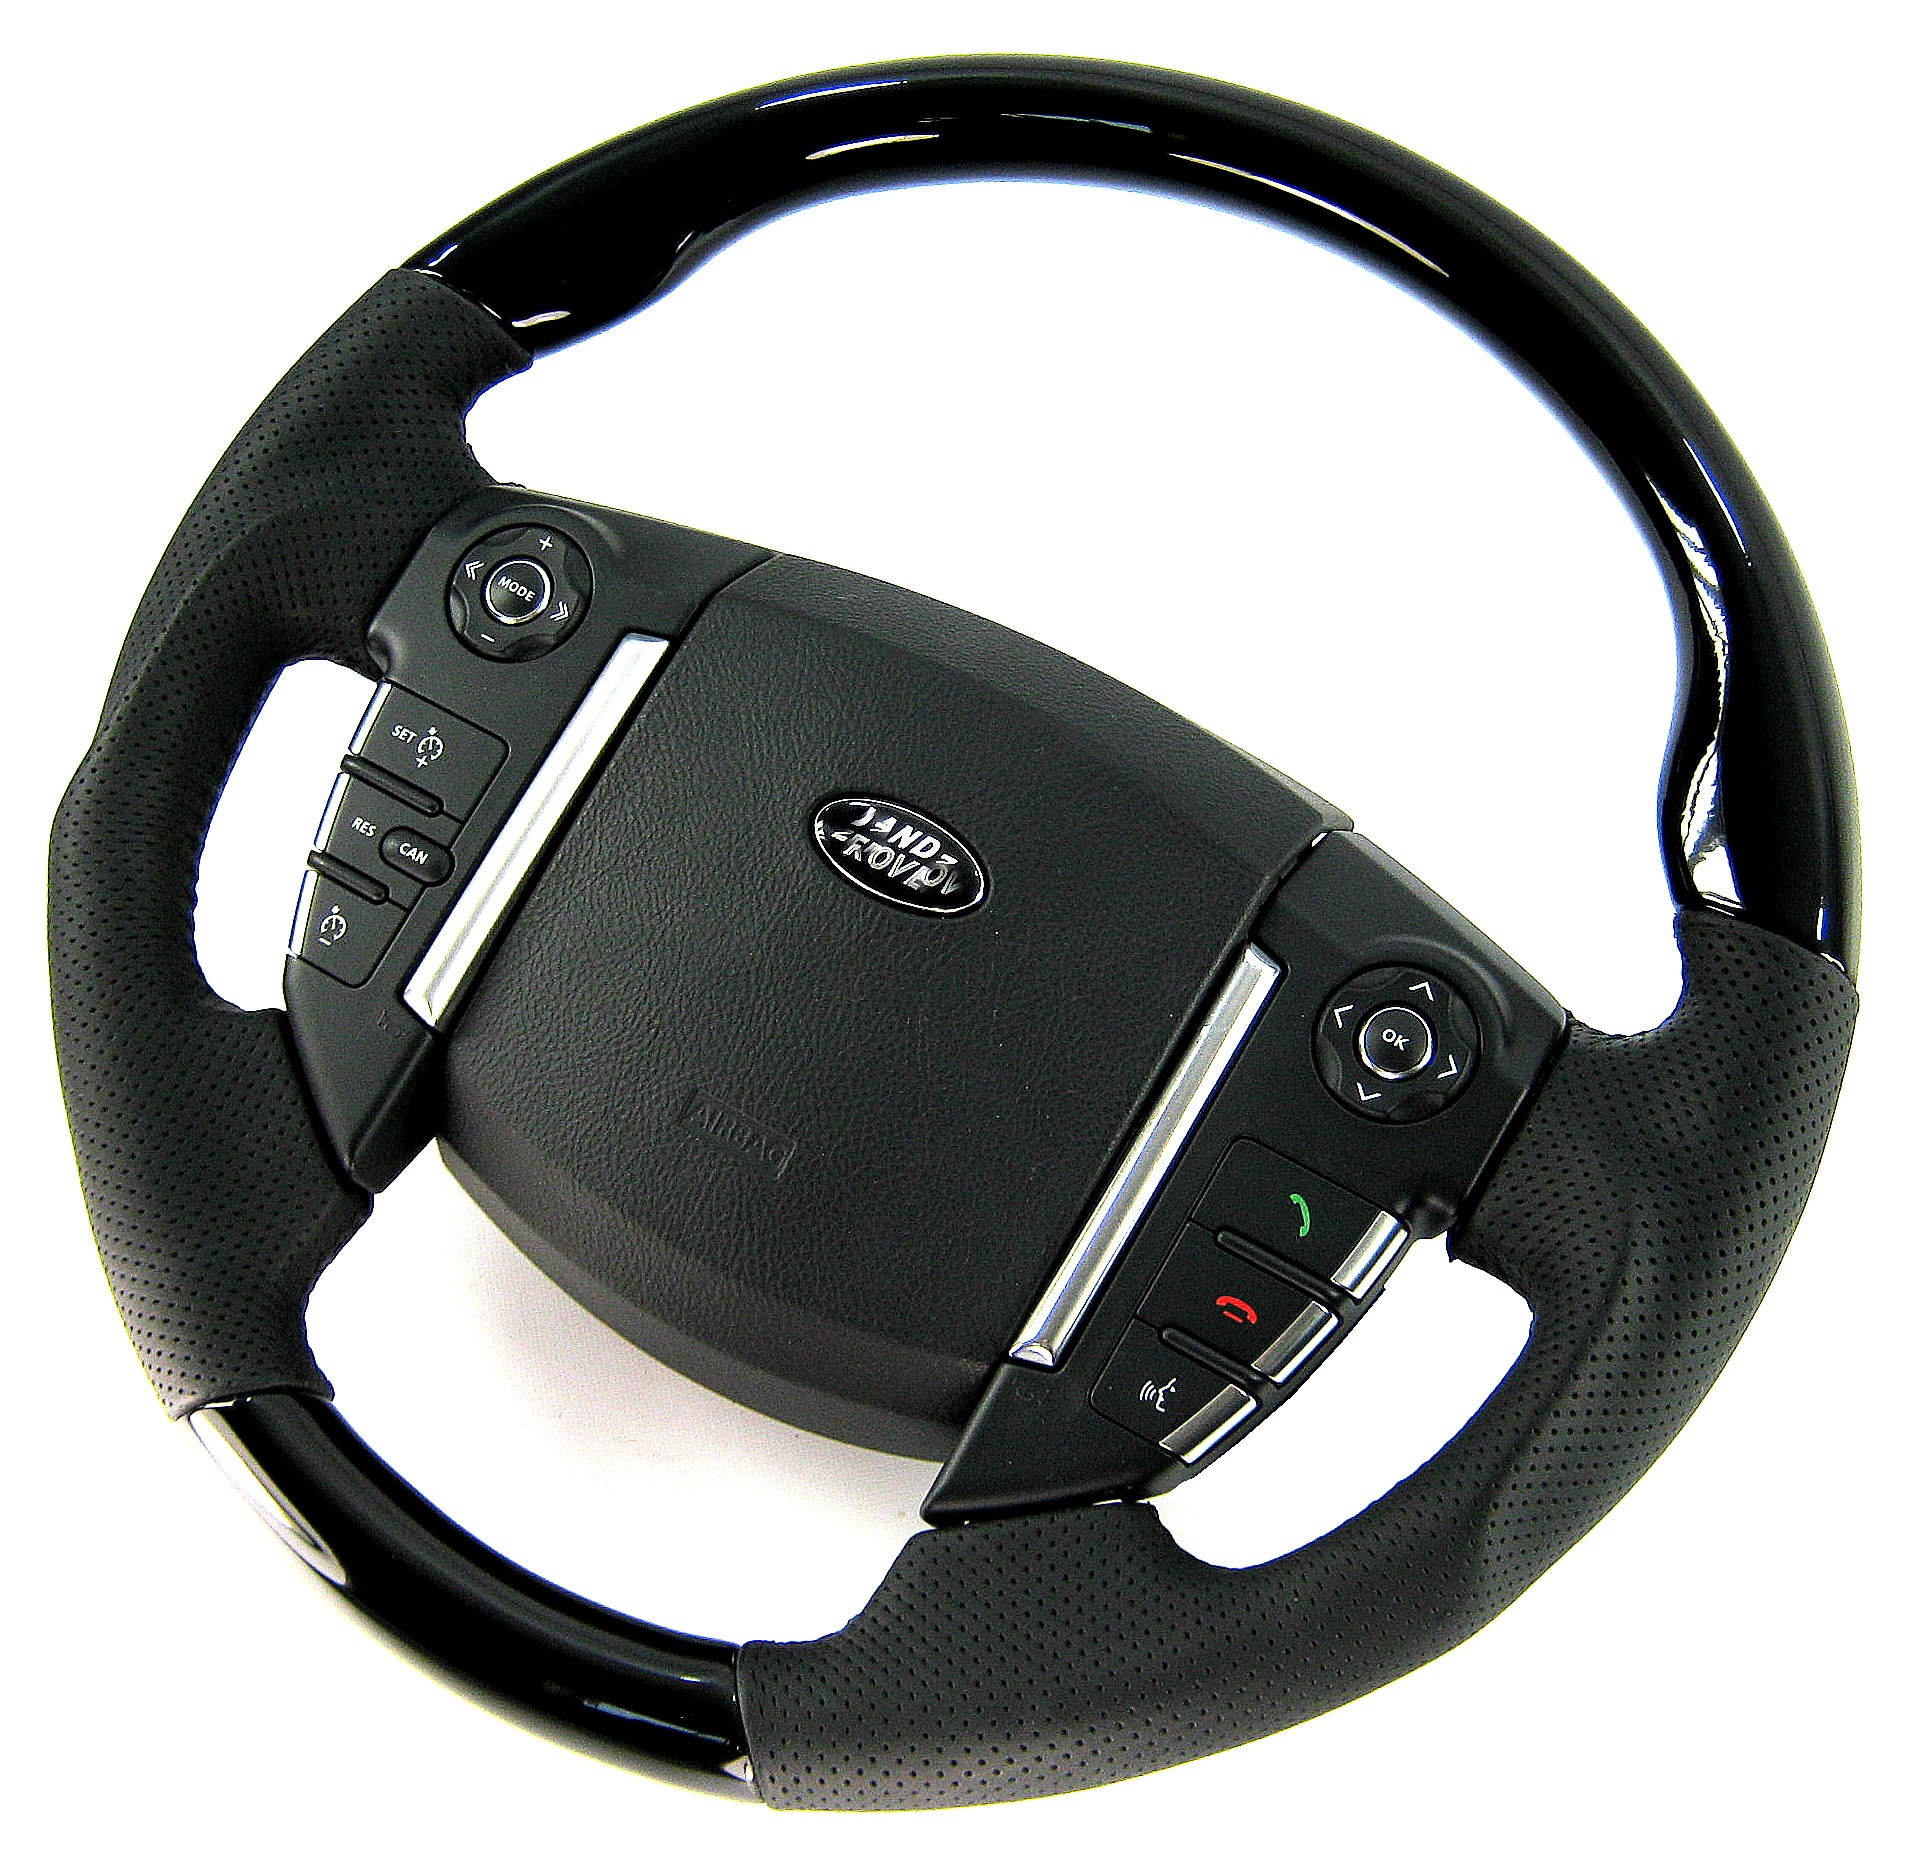 Details about Grande Black Piano lacquer Steering Wheel for Range Rover  Sport 2010+ interior